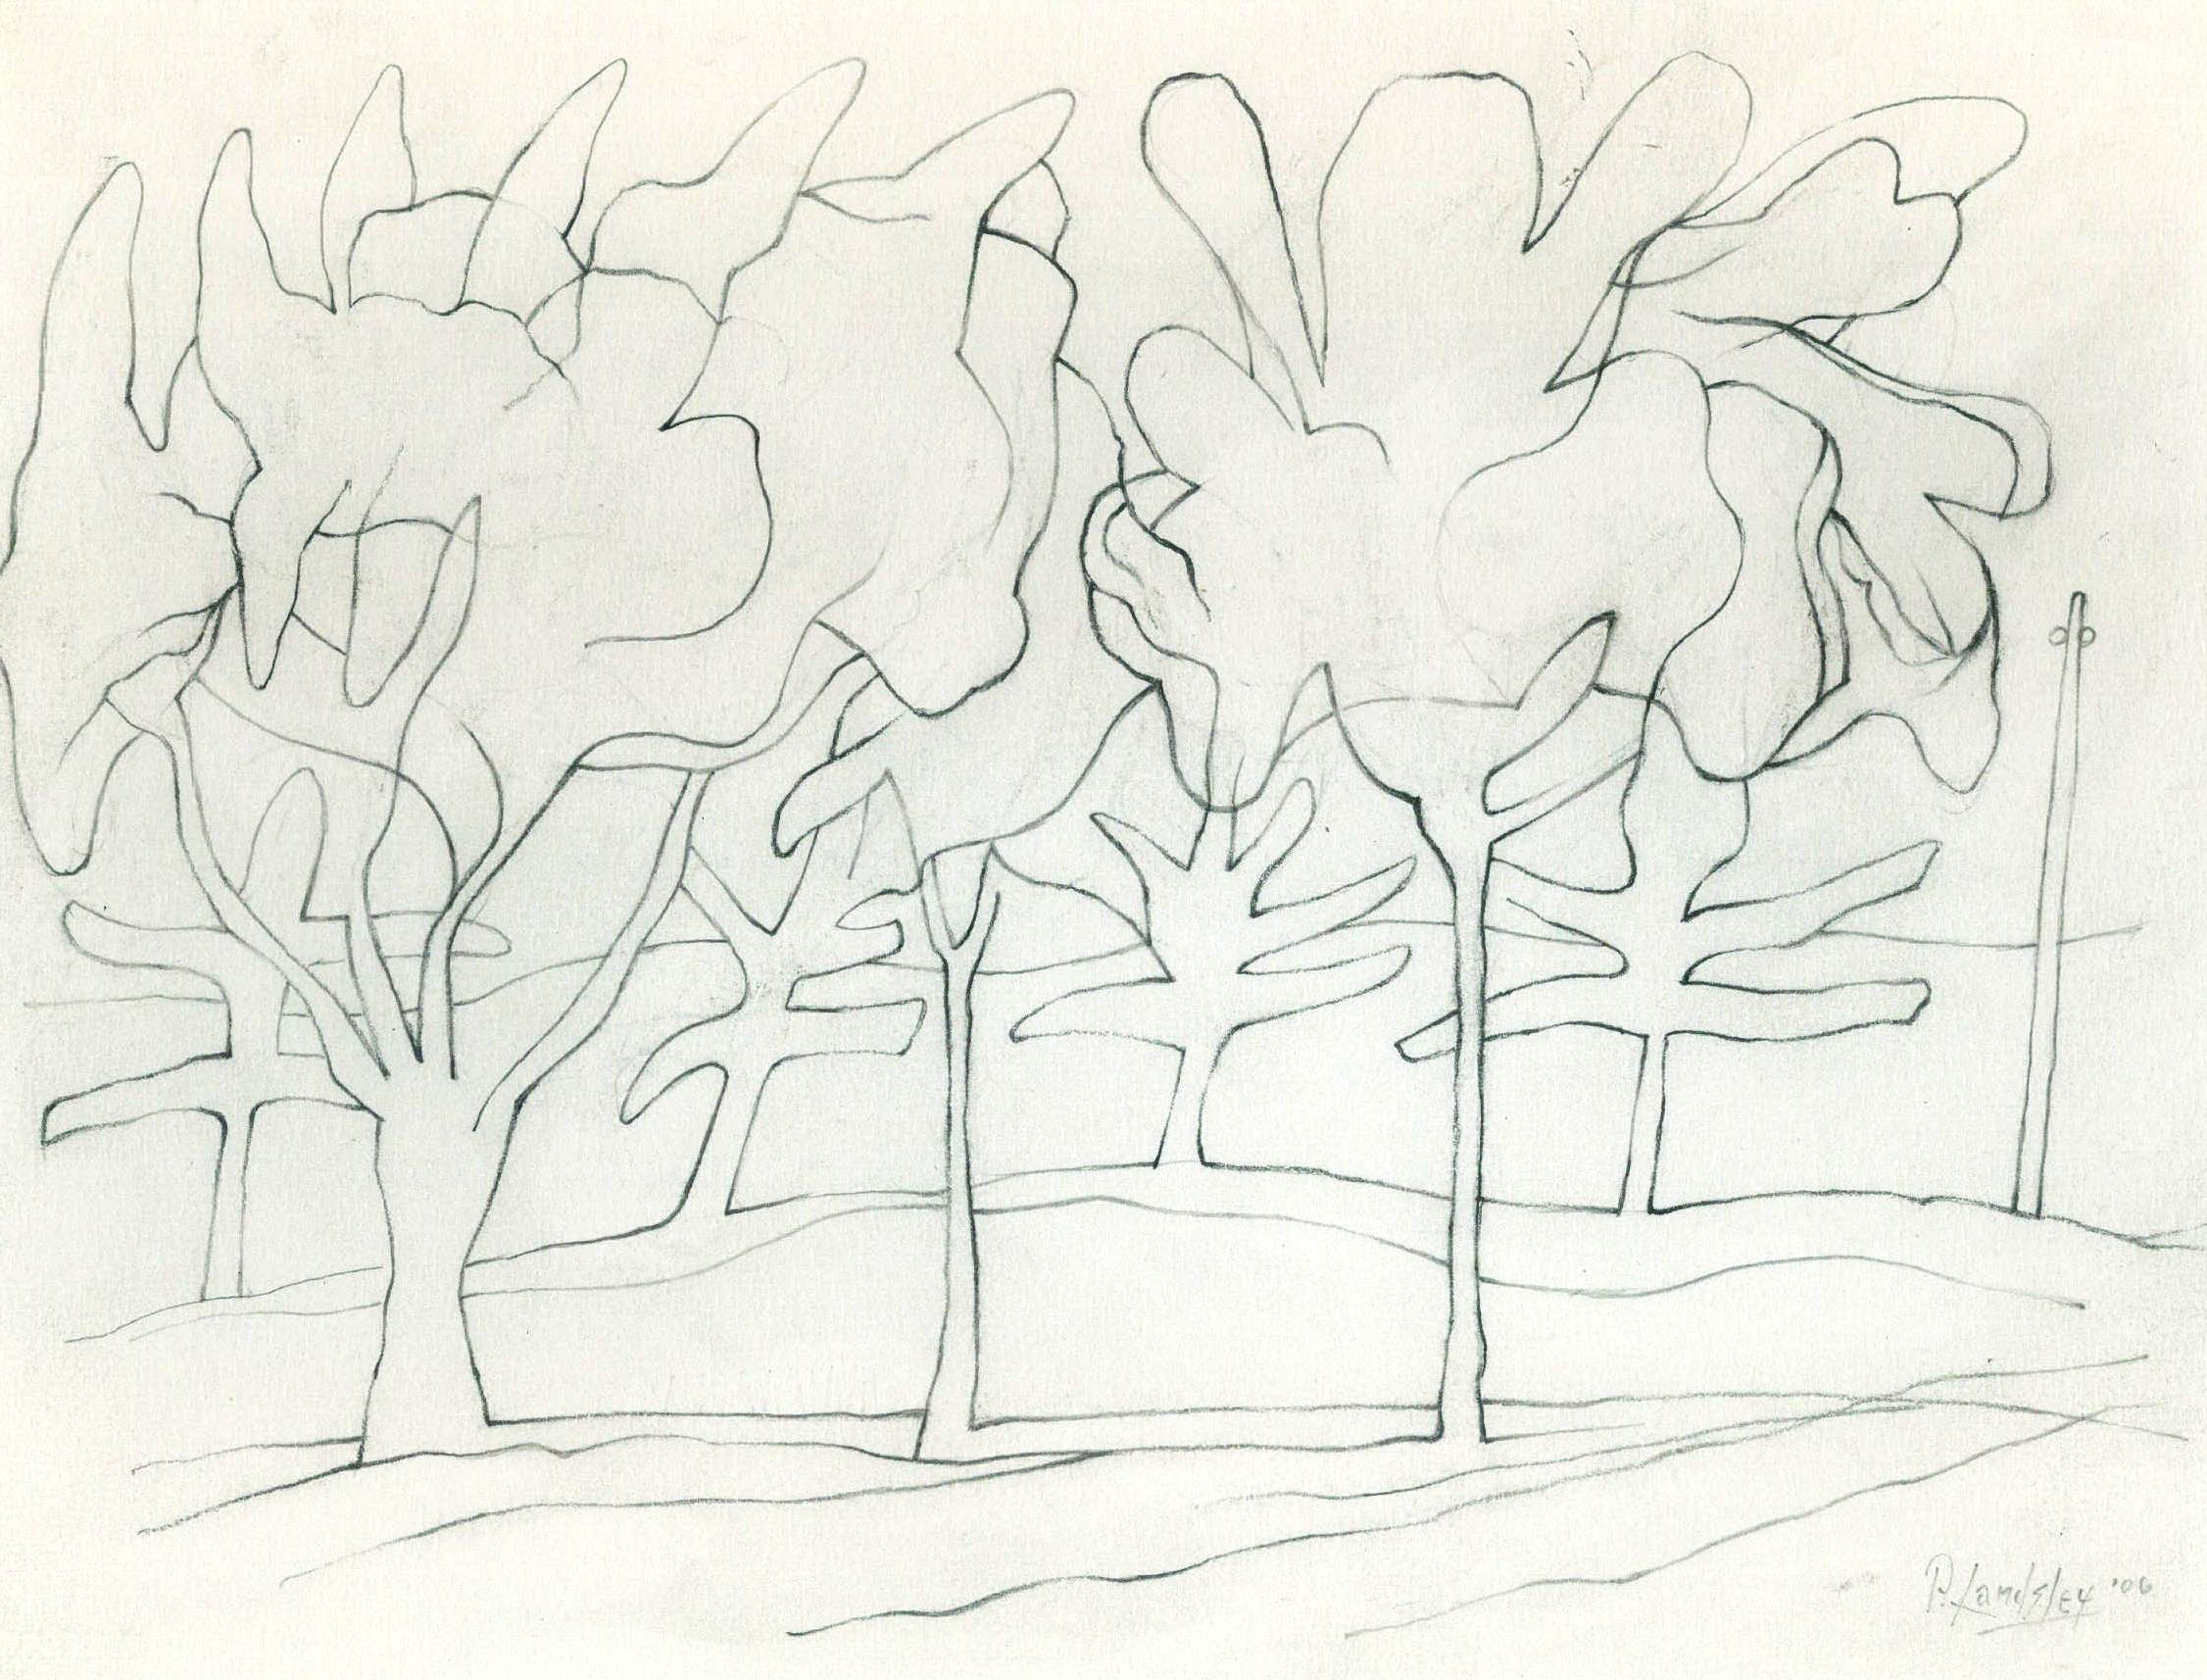 White landscape, graphite on paper